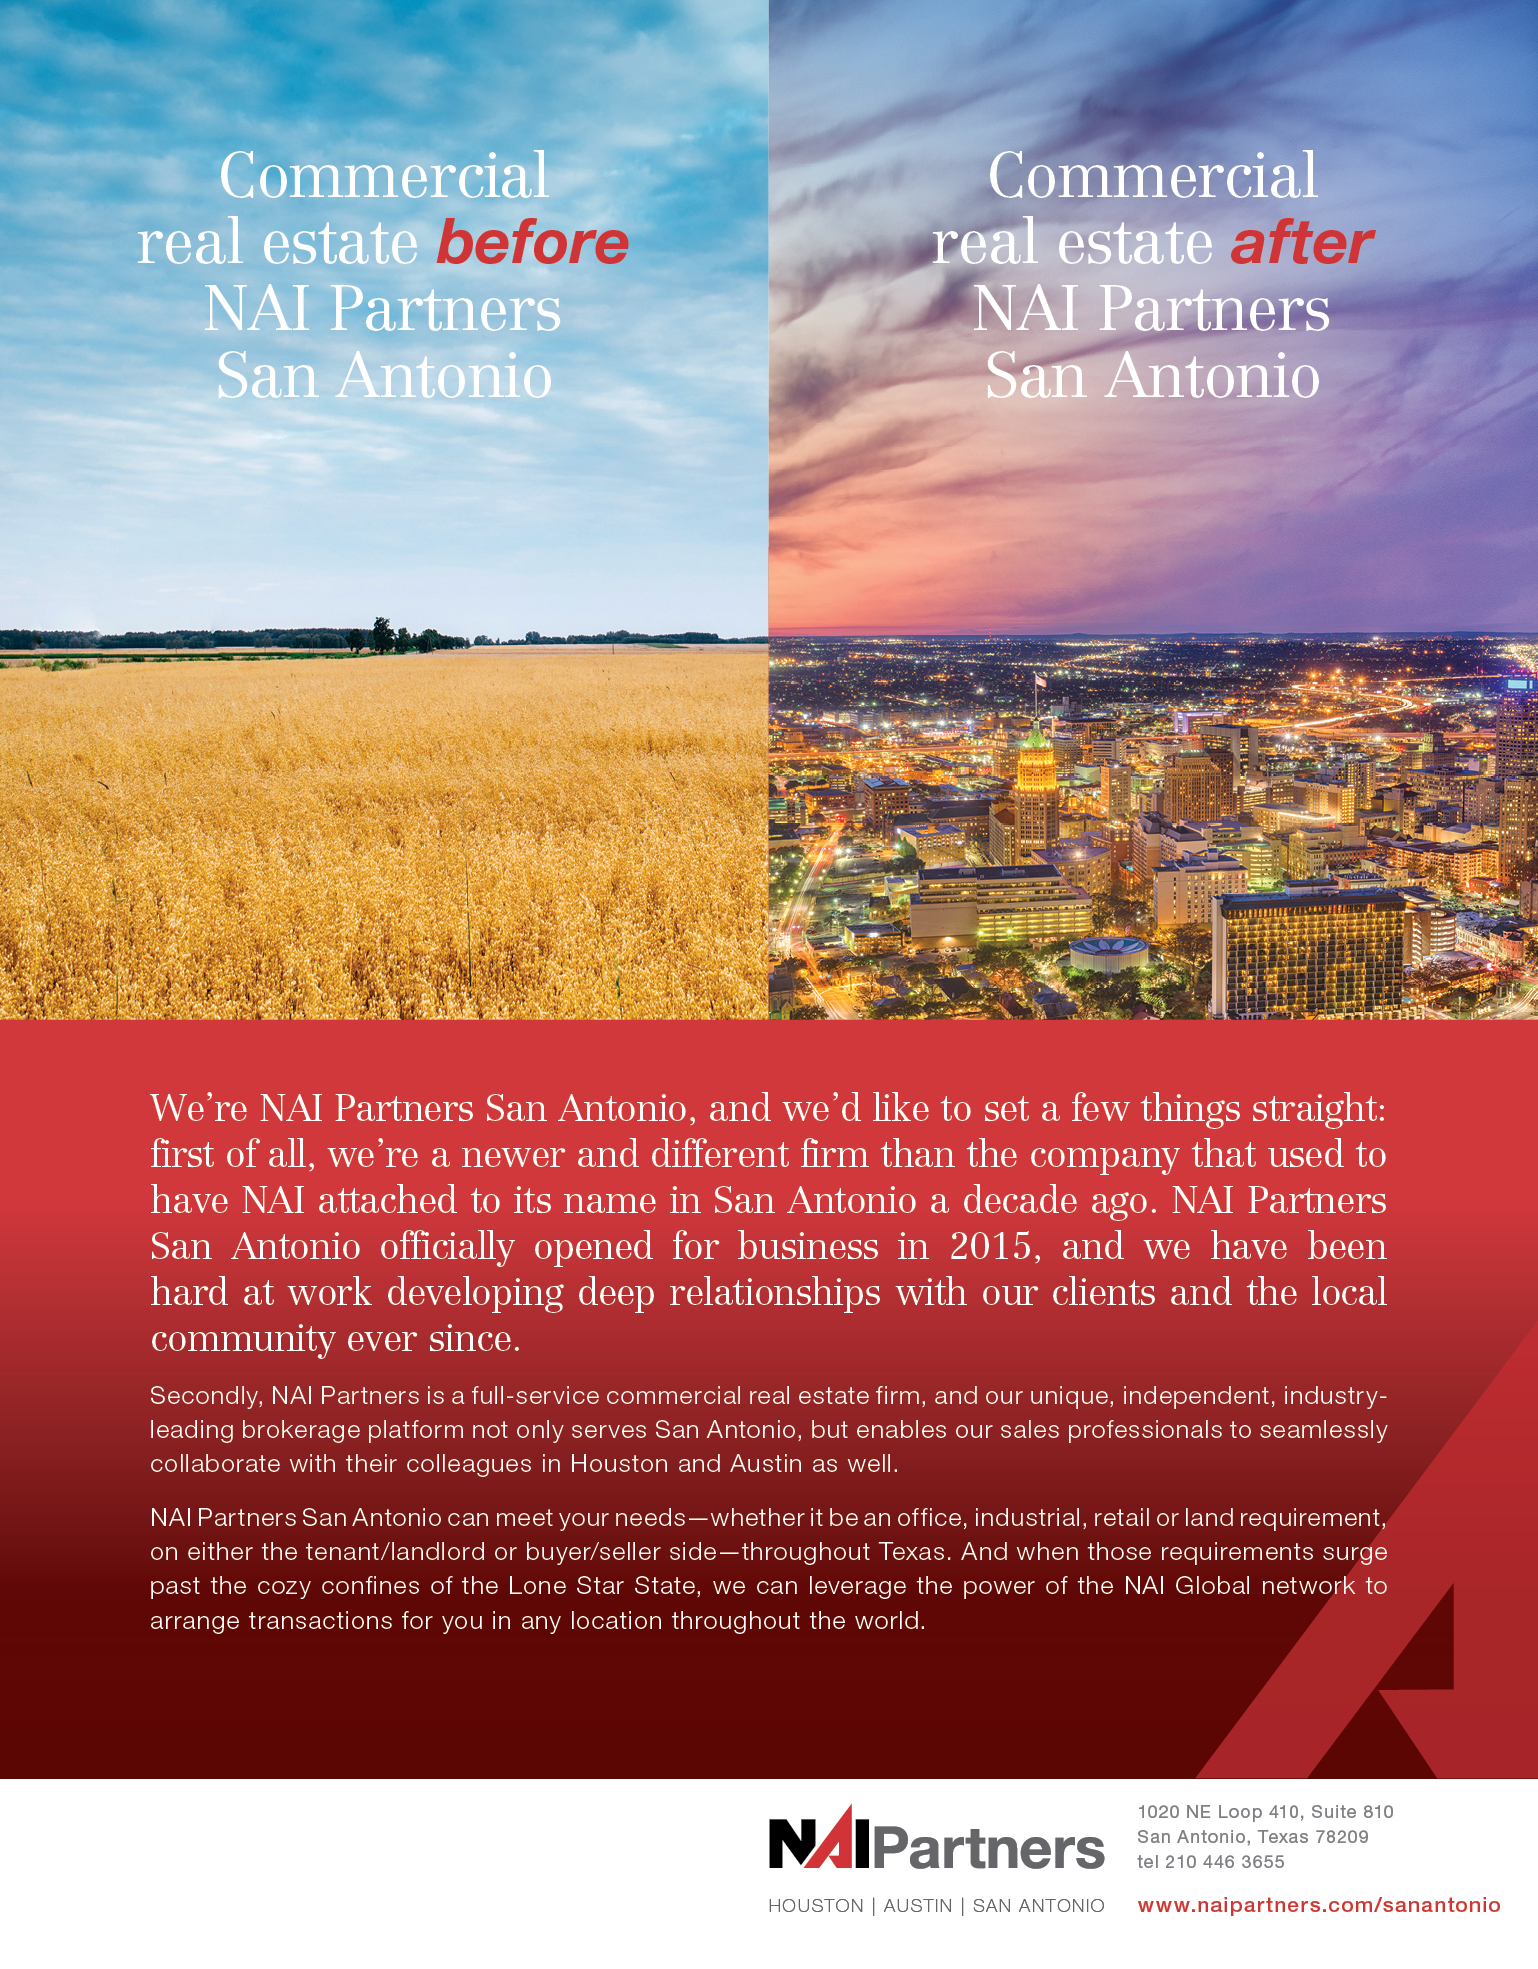 San Antonio Business Journal Ad - Commercial Real Estate Before and After NAI Partners